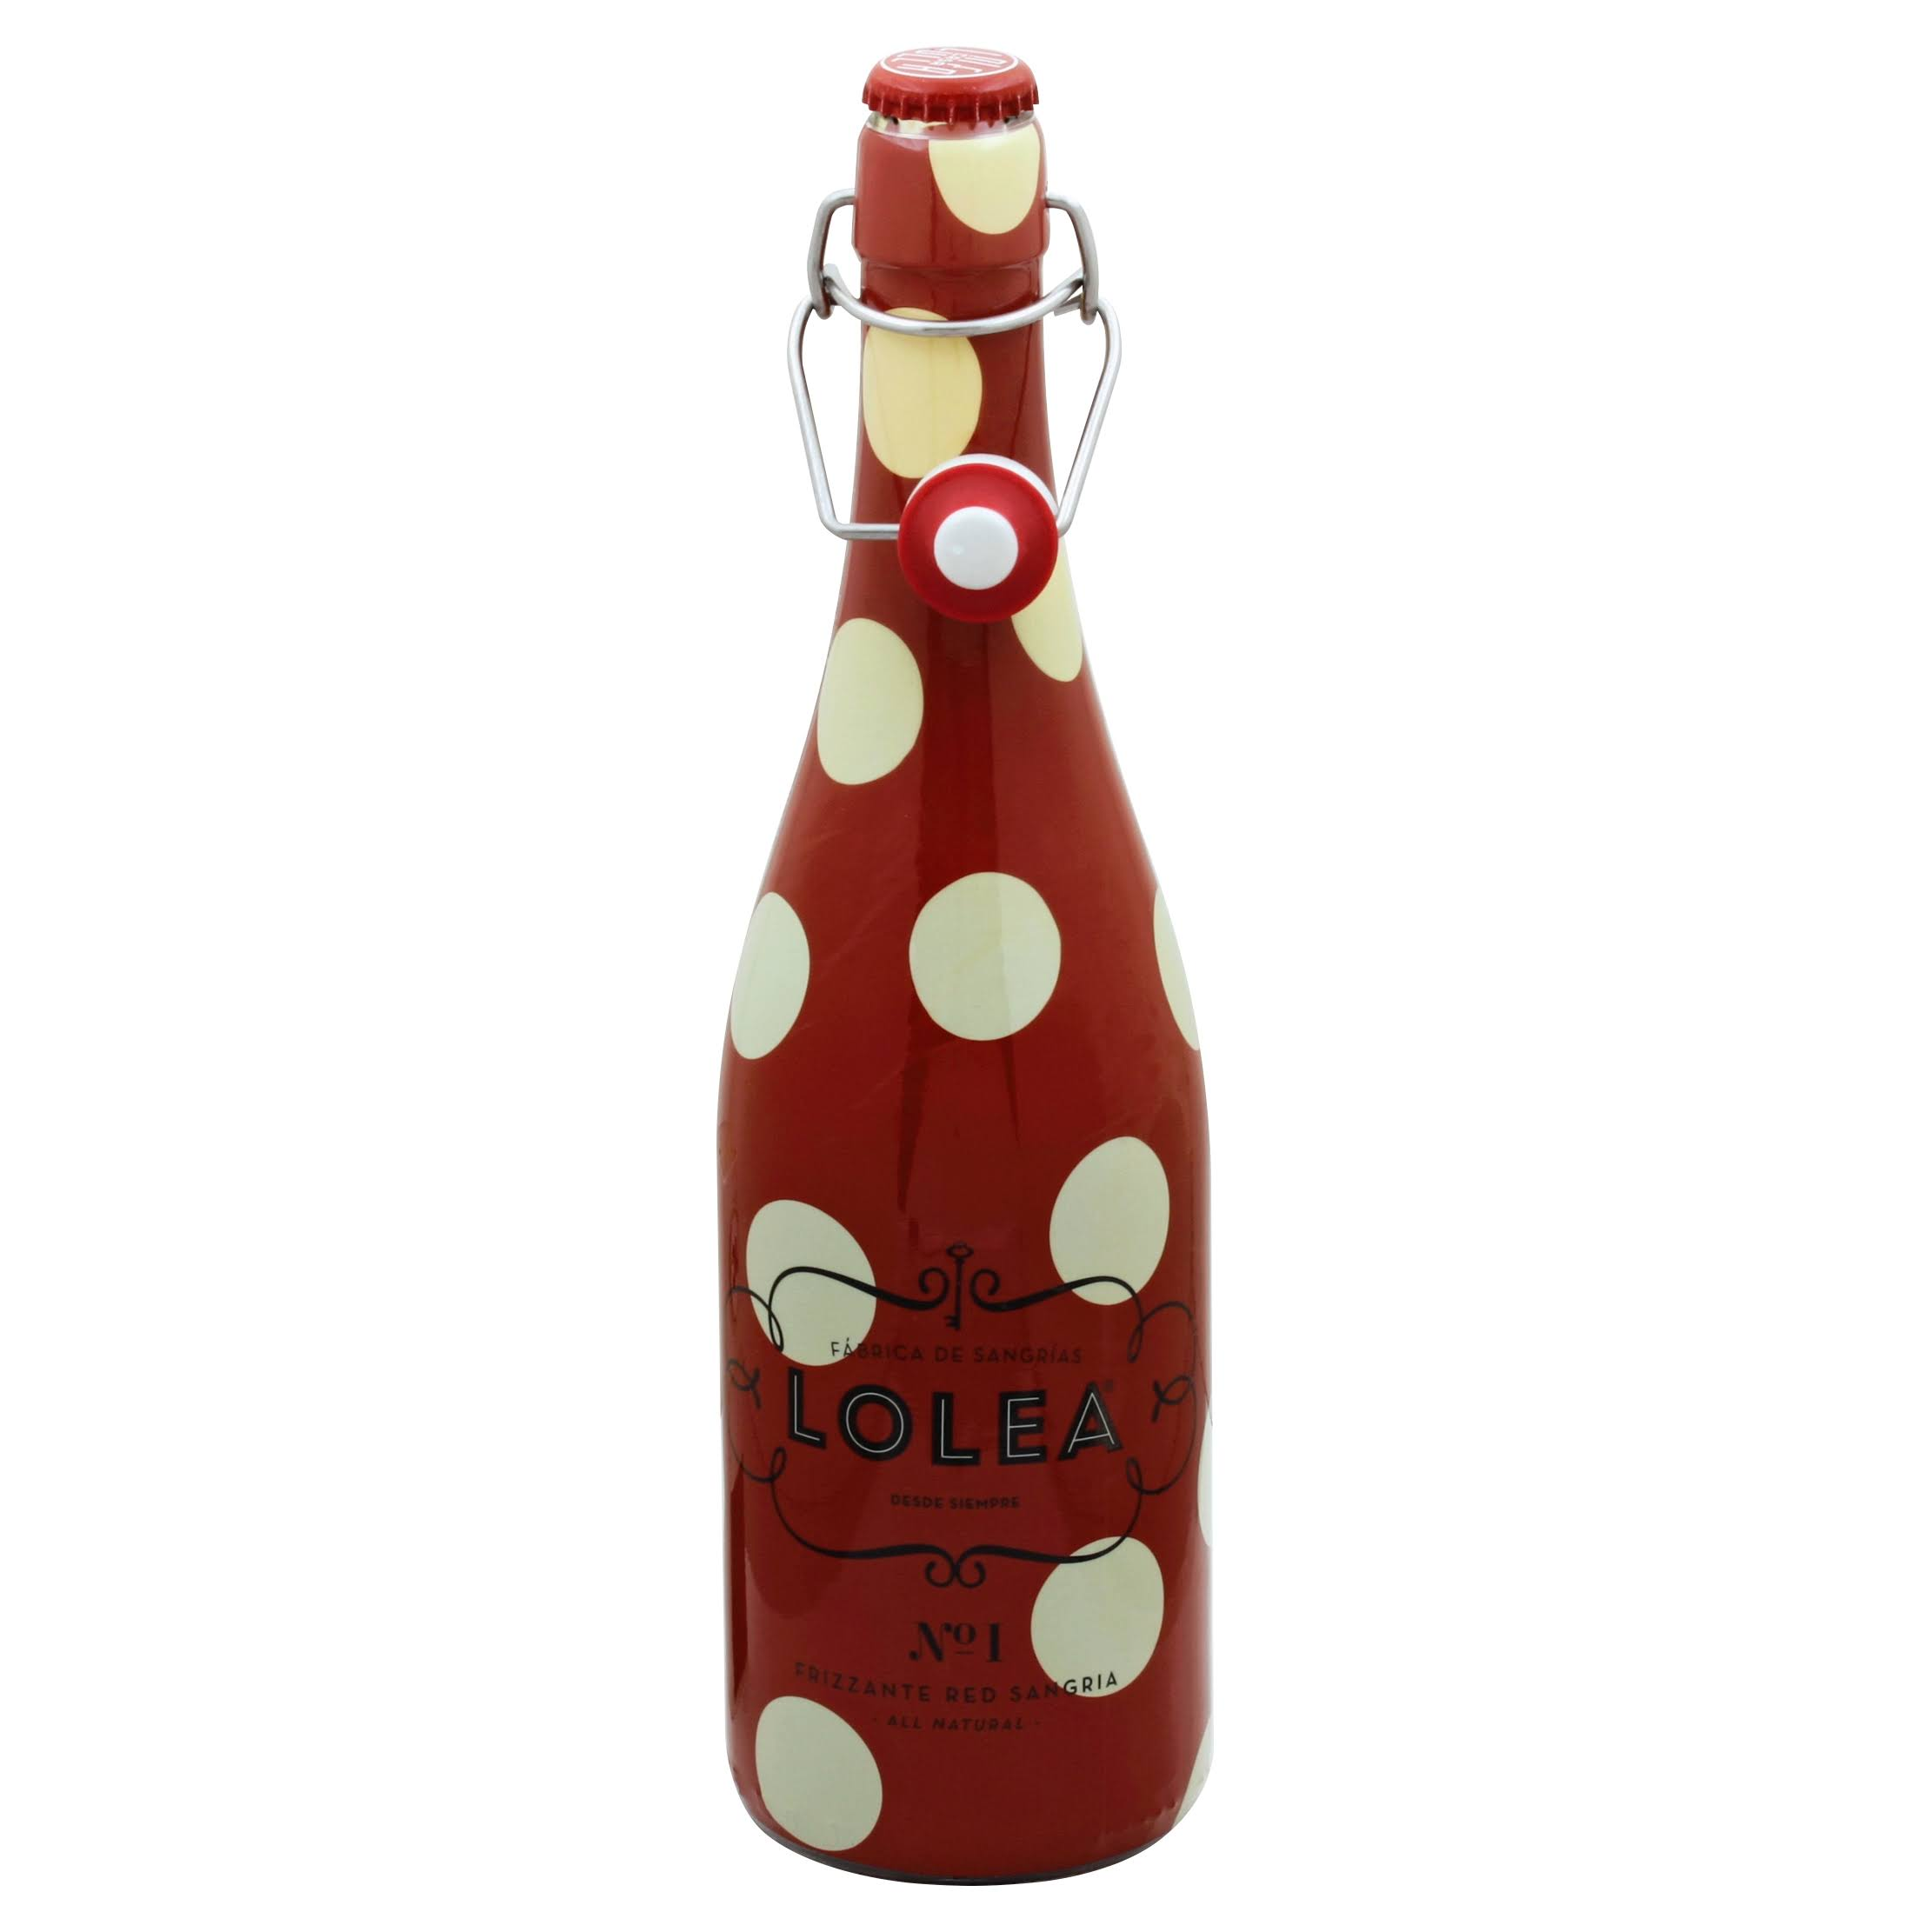 LaTienda Lolea Red Sangria - 750 ml bottle